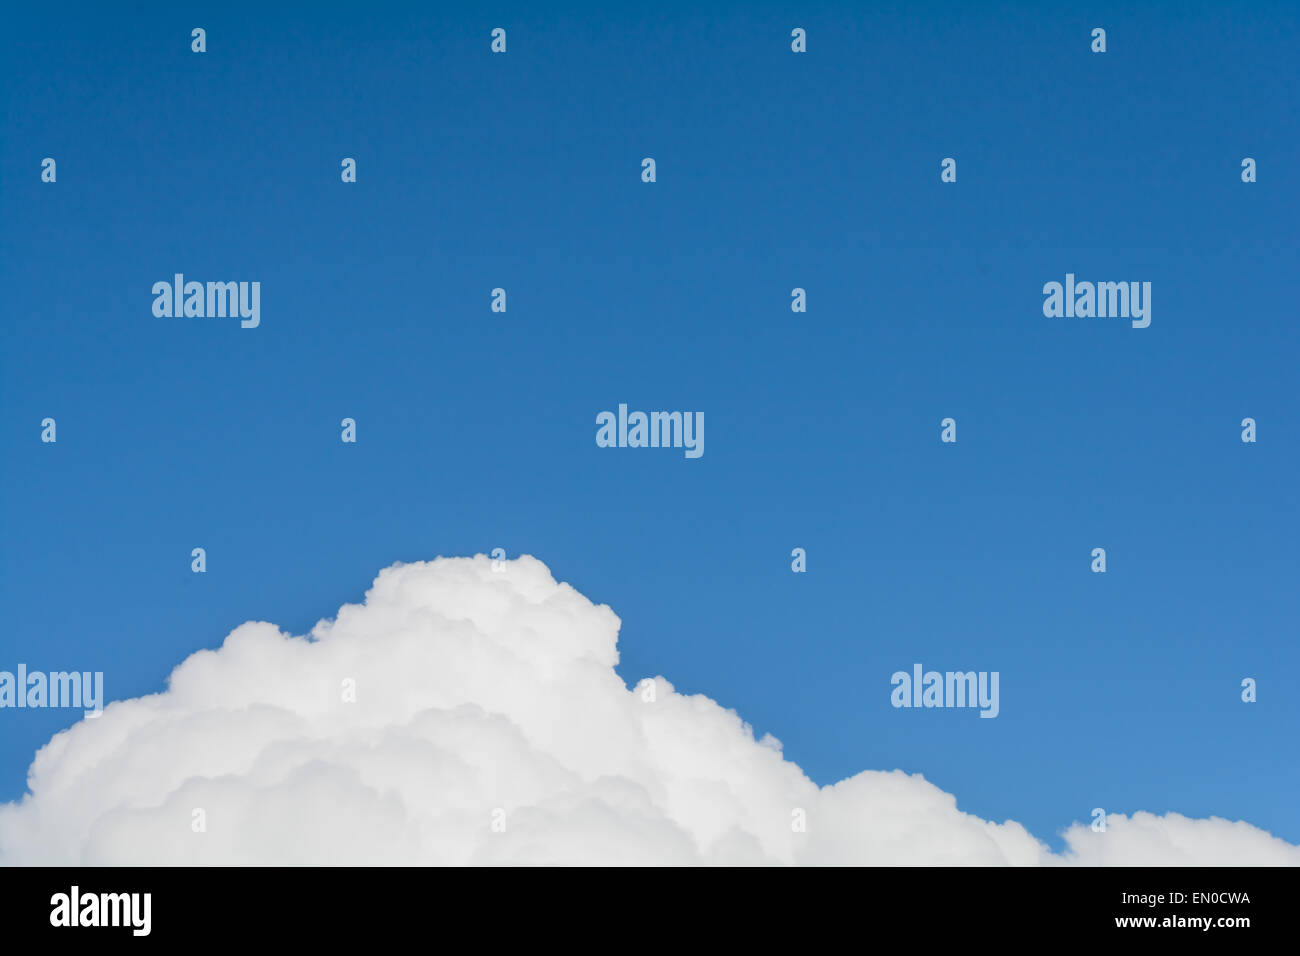 Texture of clouds with space for text Stock Photo